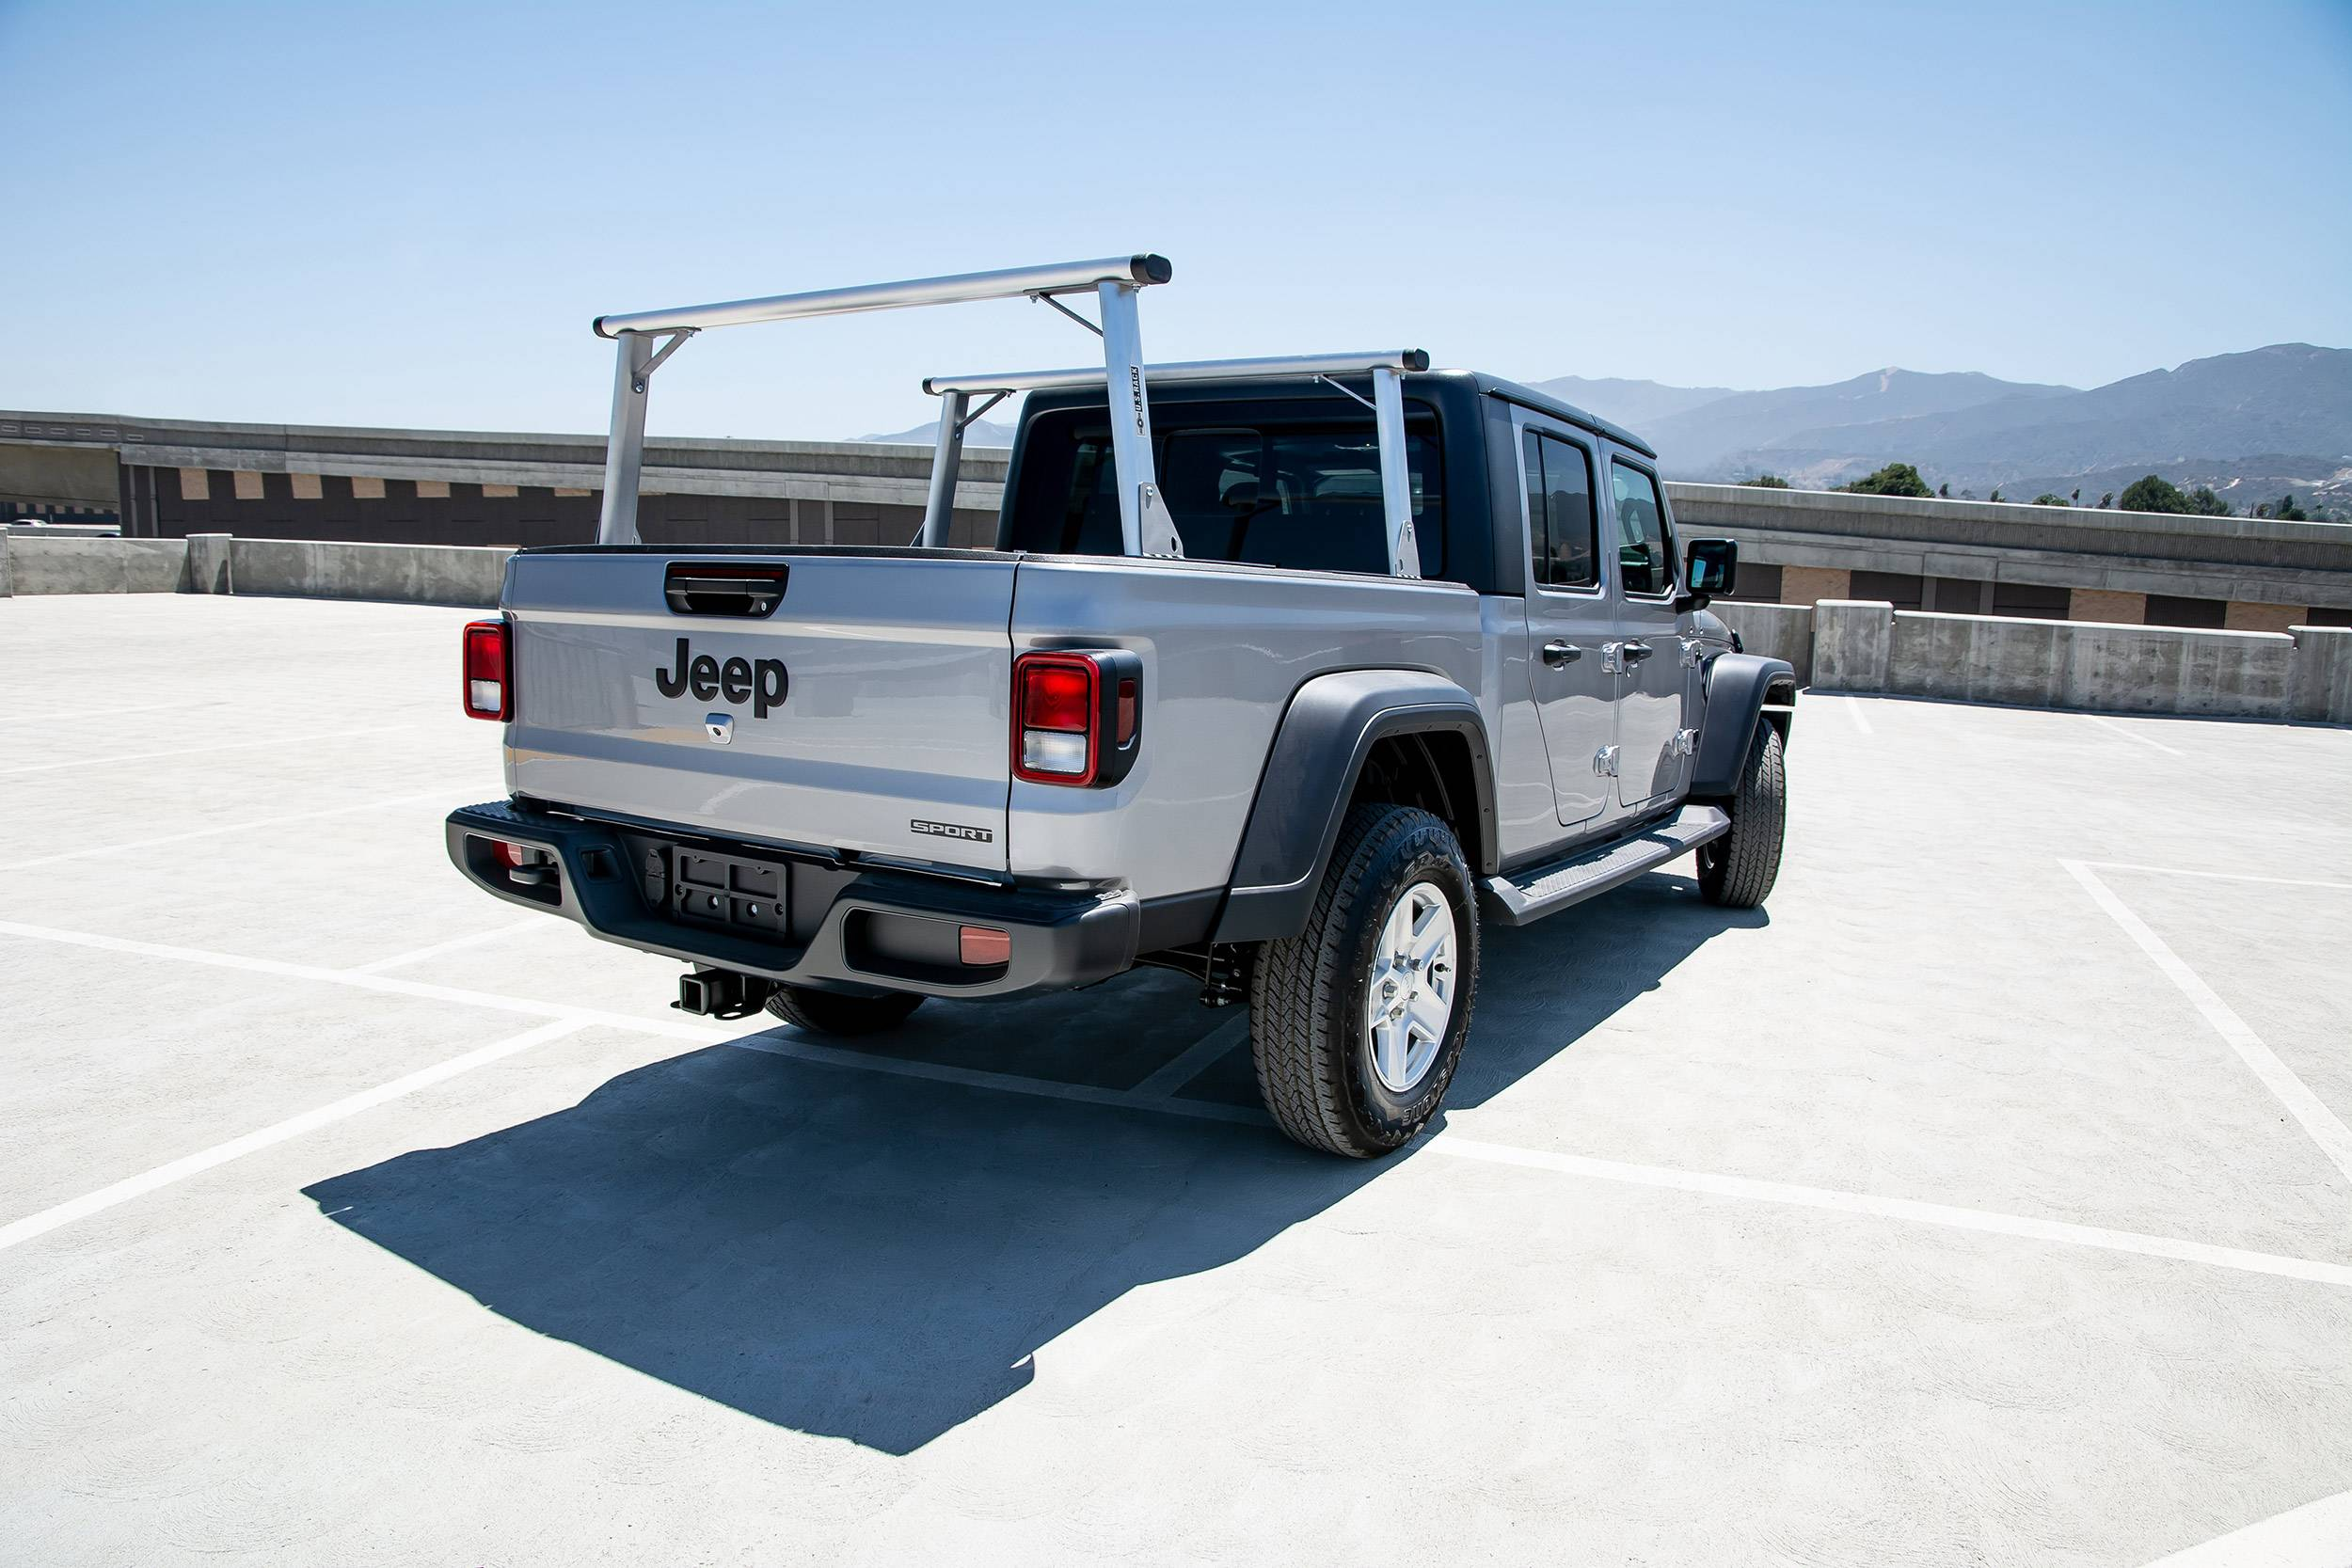 2020 Jeep Gladiator Clipper Truck Rack, Fleetside, Track System, Cab Height, Brushed Cross Bar and Legs With Bead Blasted Base - PN #82240250